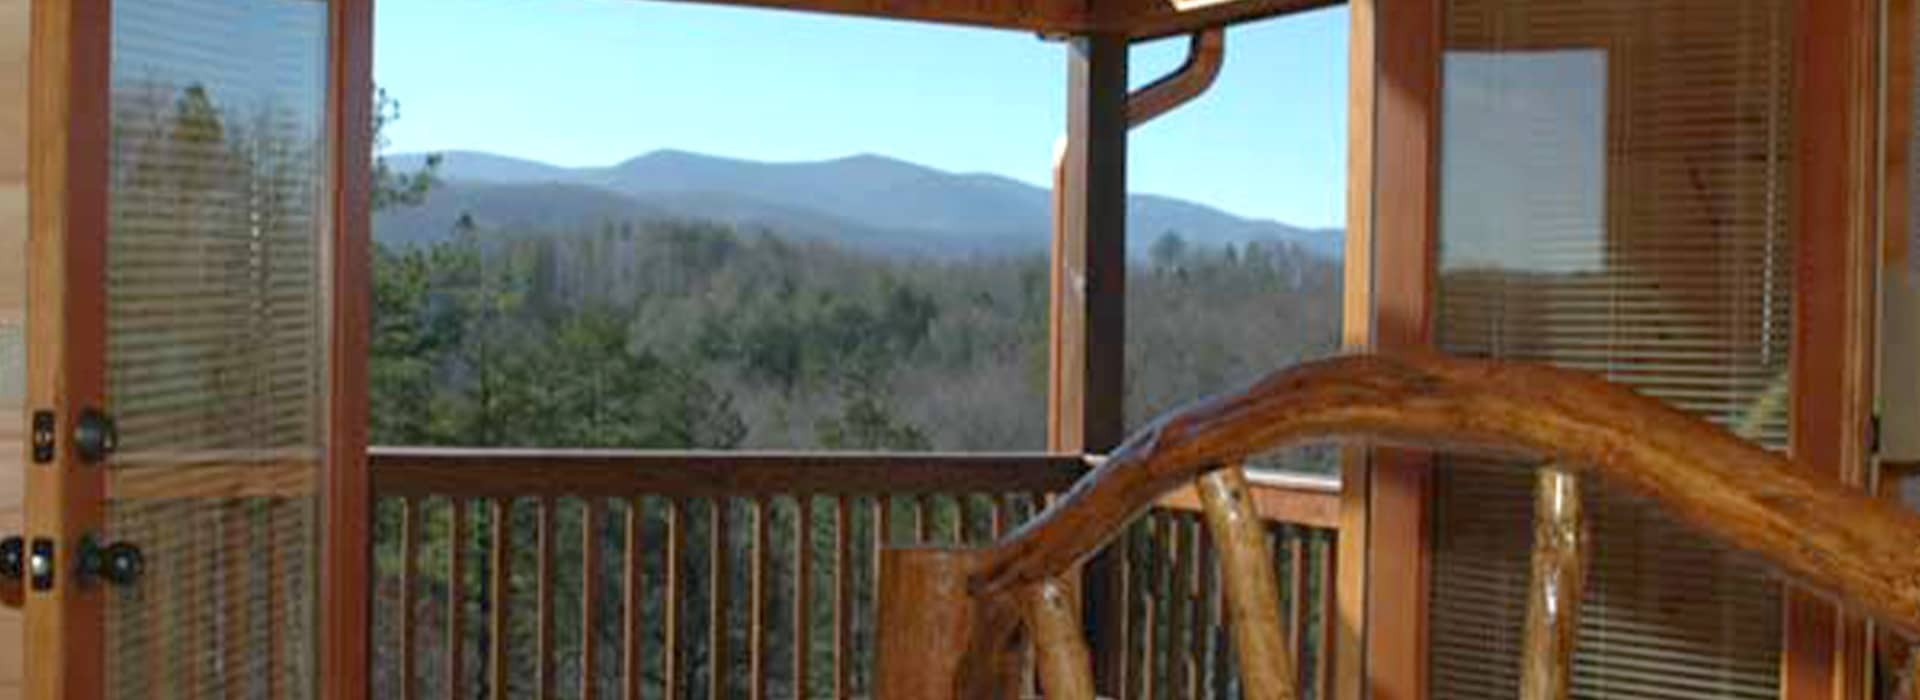 Blue Ridge Georgia Cabins